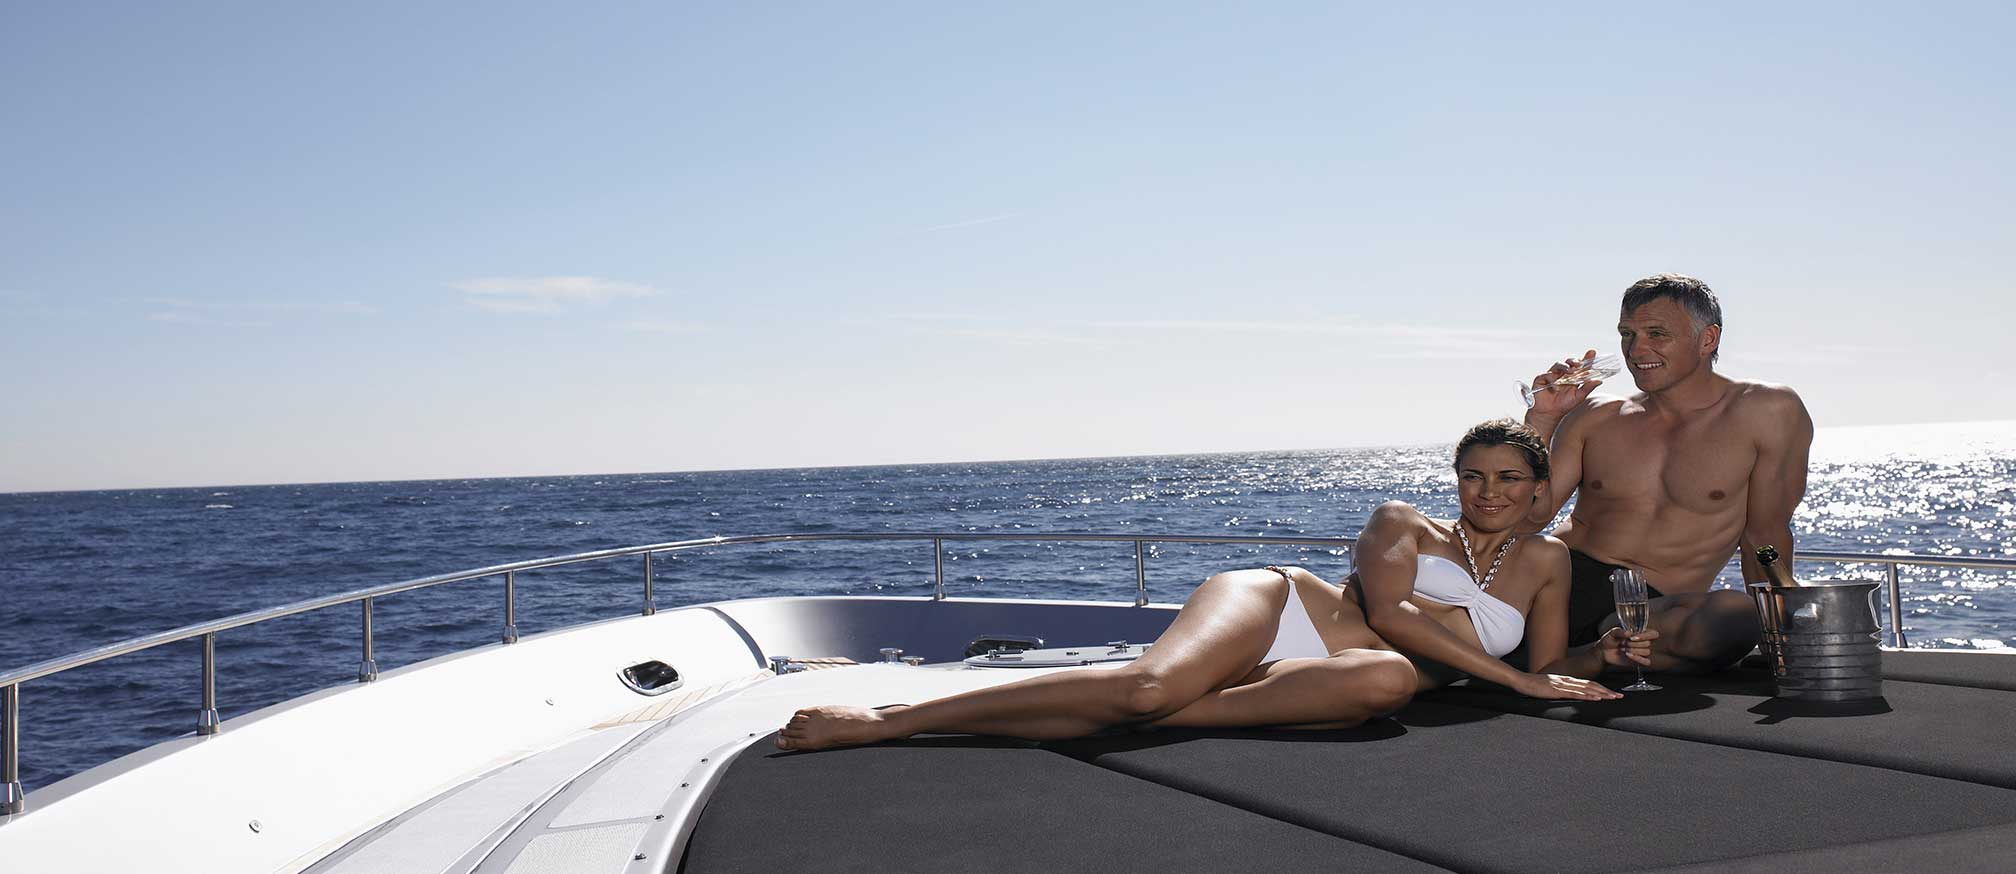 Charter luxury yacht with couple relaxing